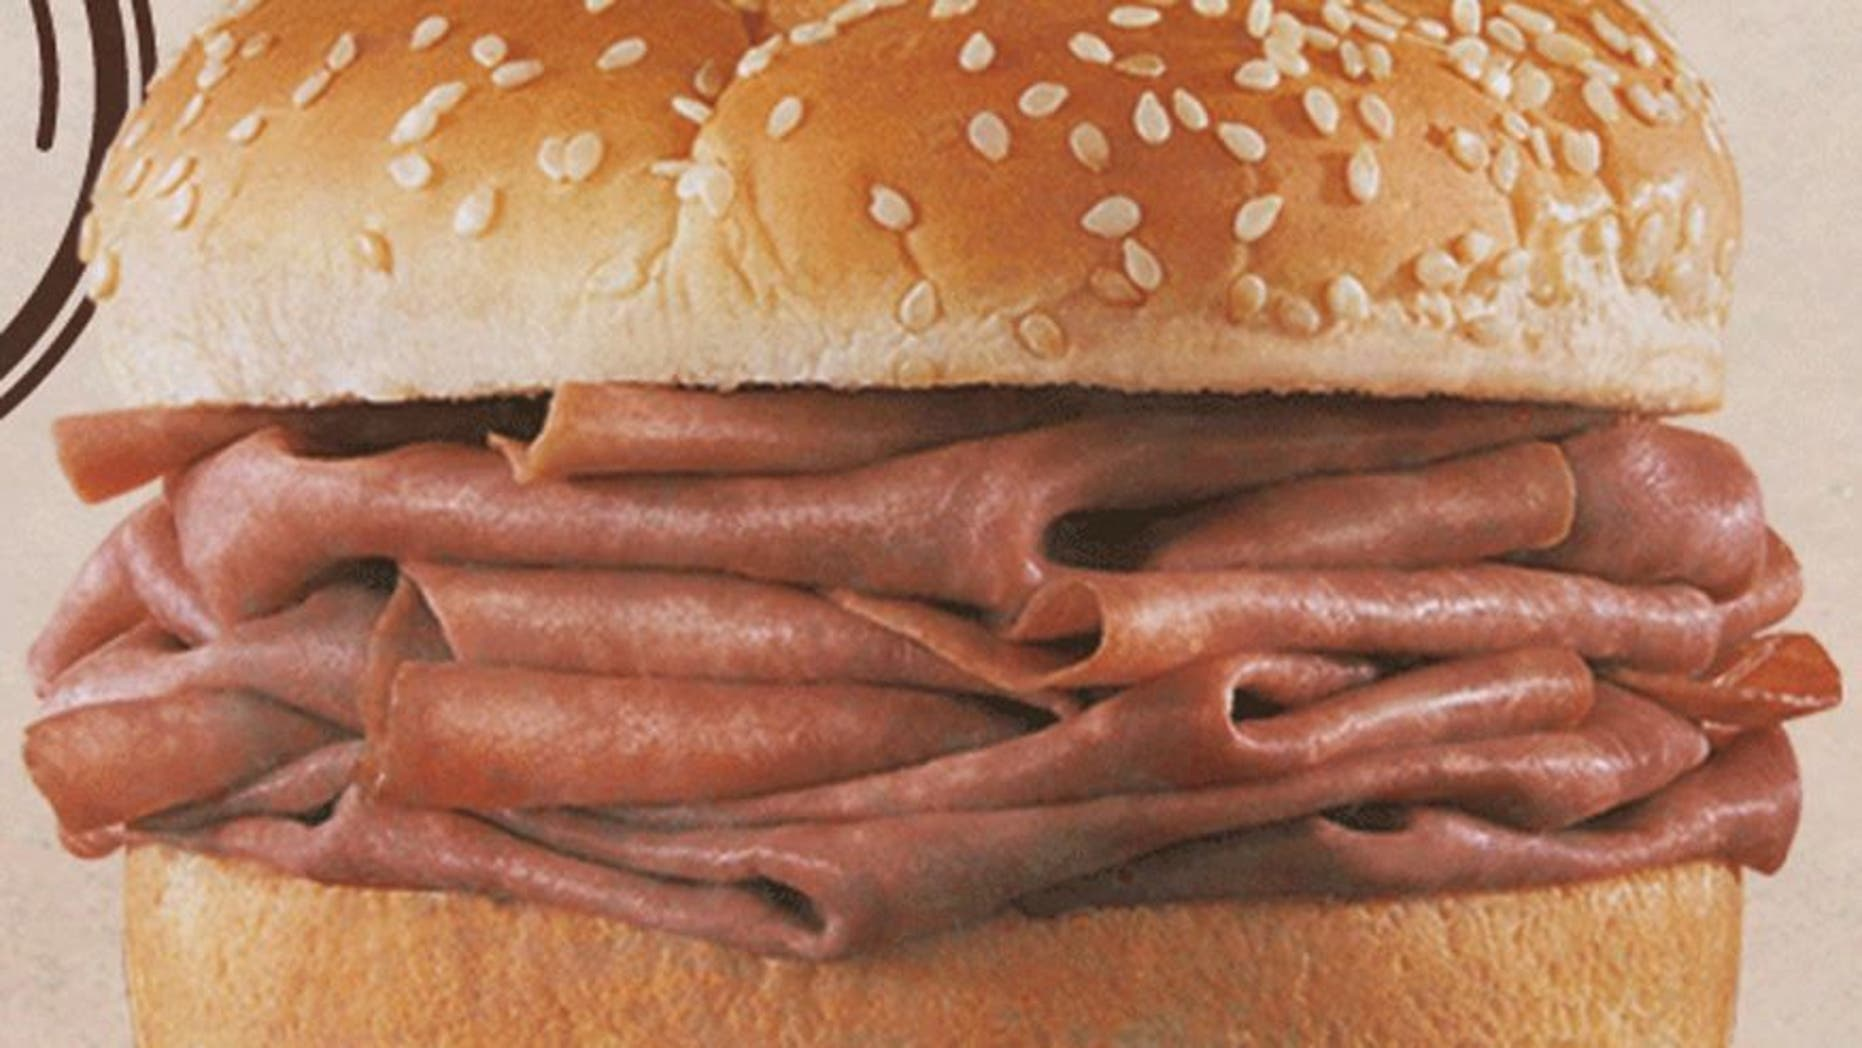 An Alabama police sergeant said he bit into an Arby's Classic Roast Beef sandwich while eating during his shift last week and found a 1-inch bolt hidden inside the meat.